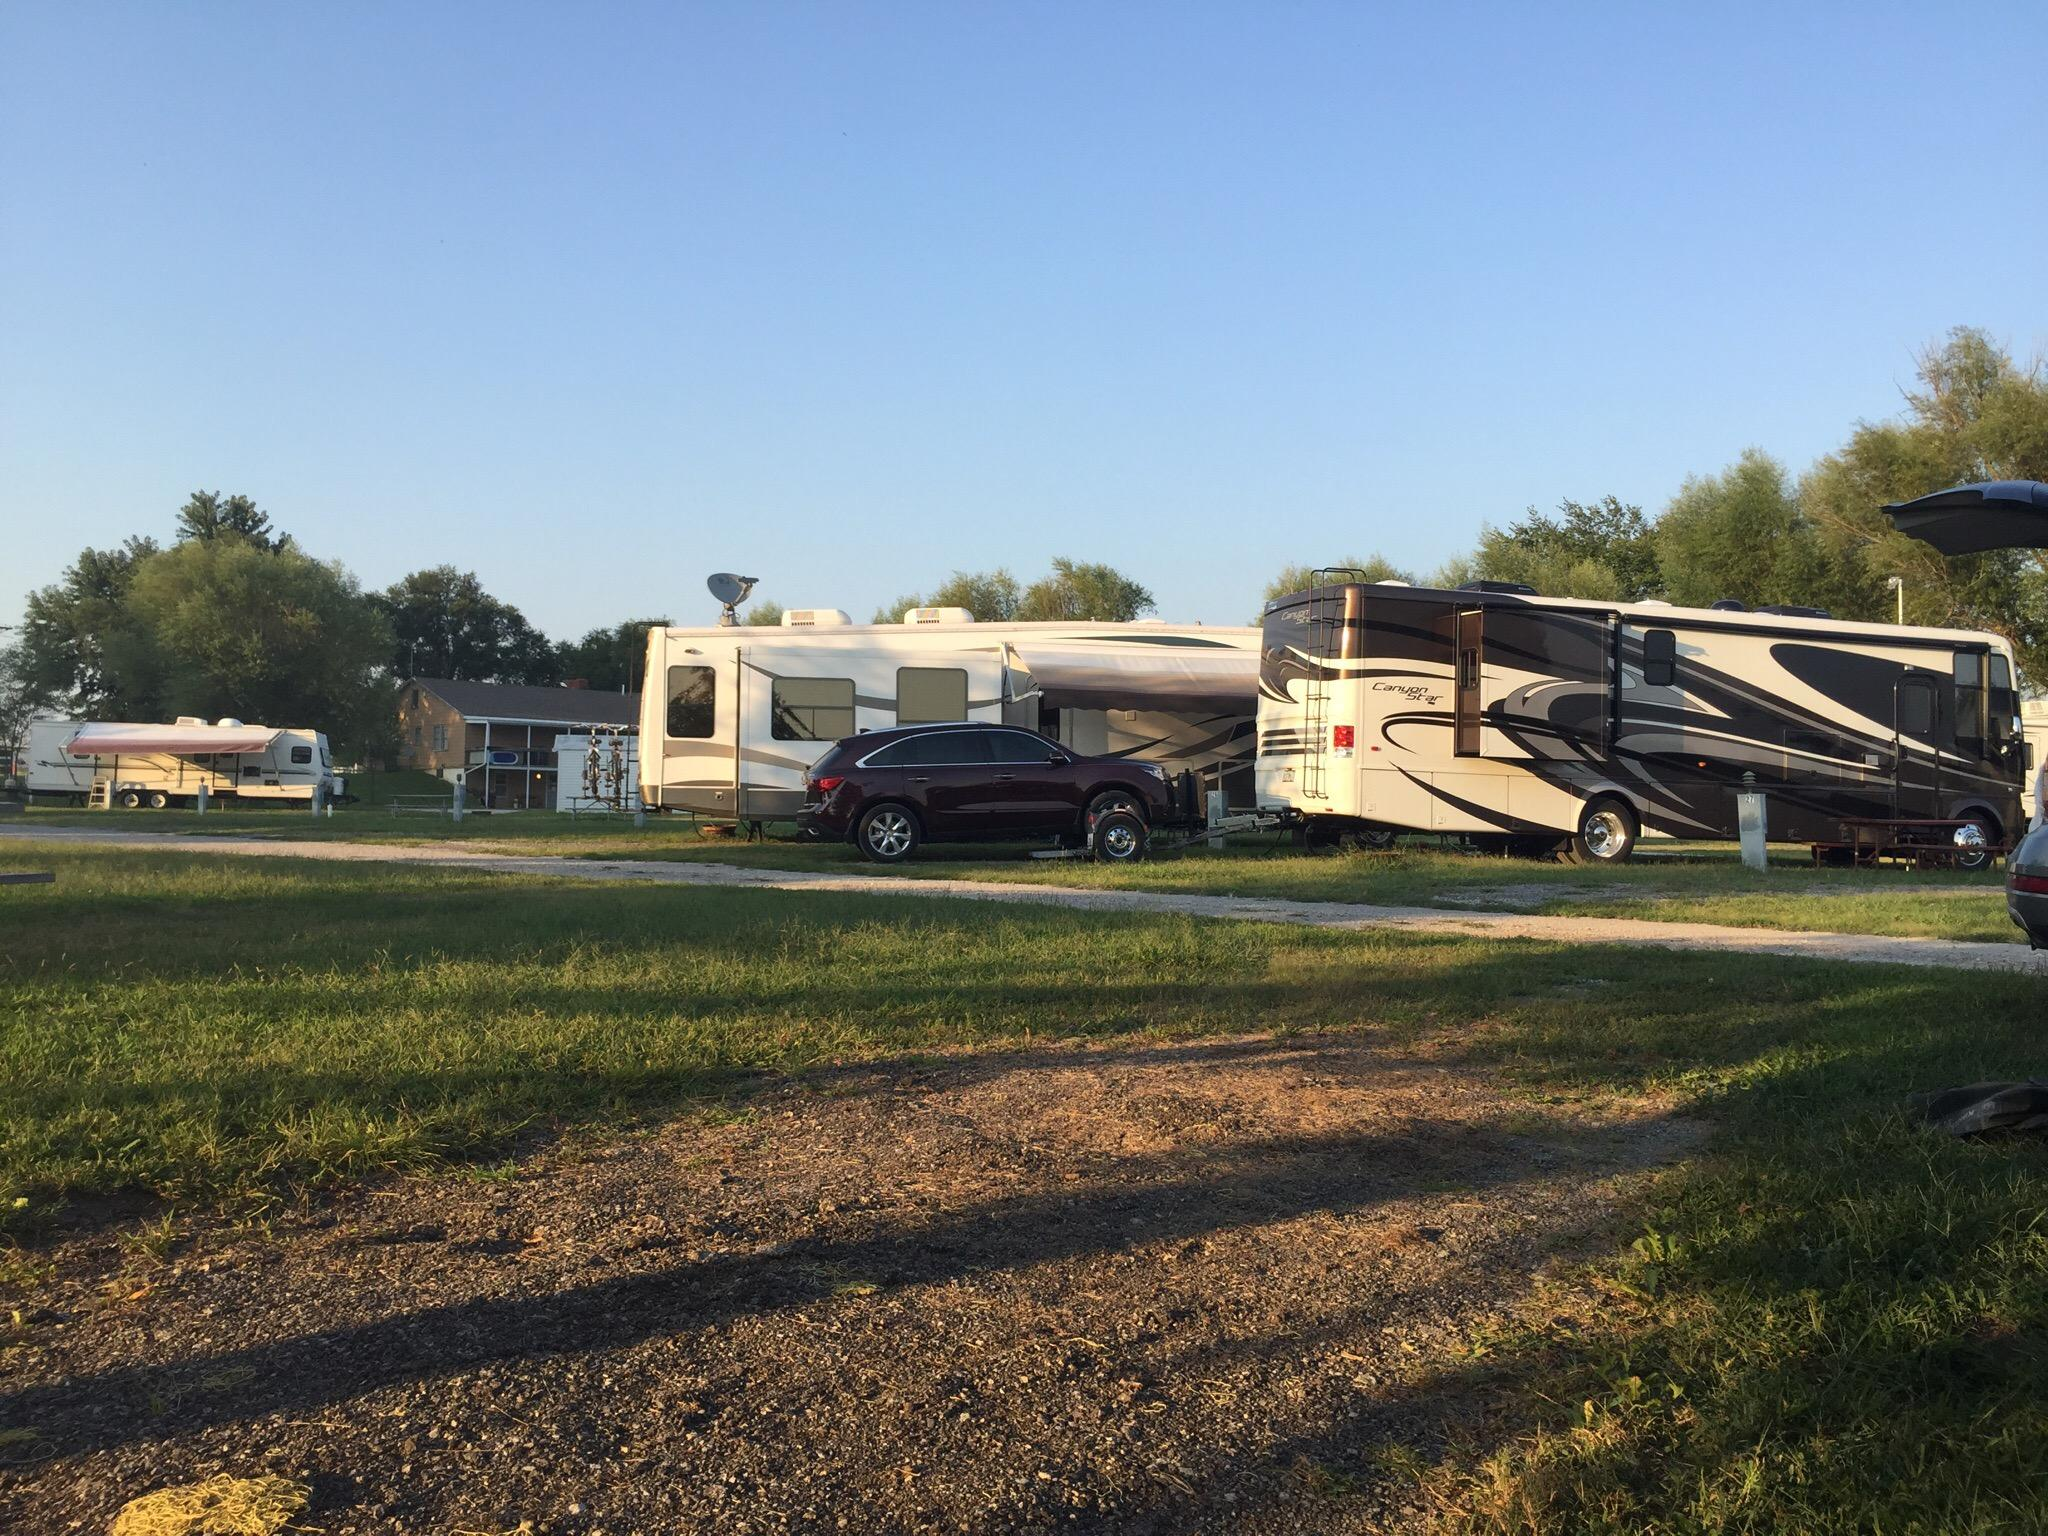 The Great Escape RV & Camp Resort